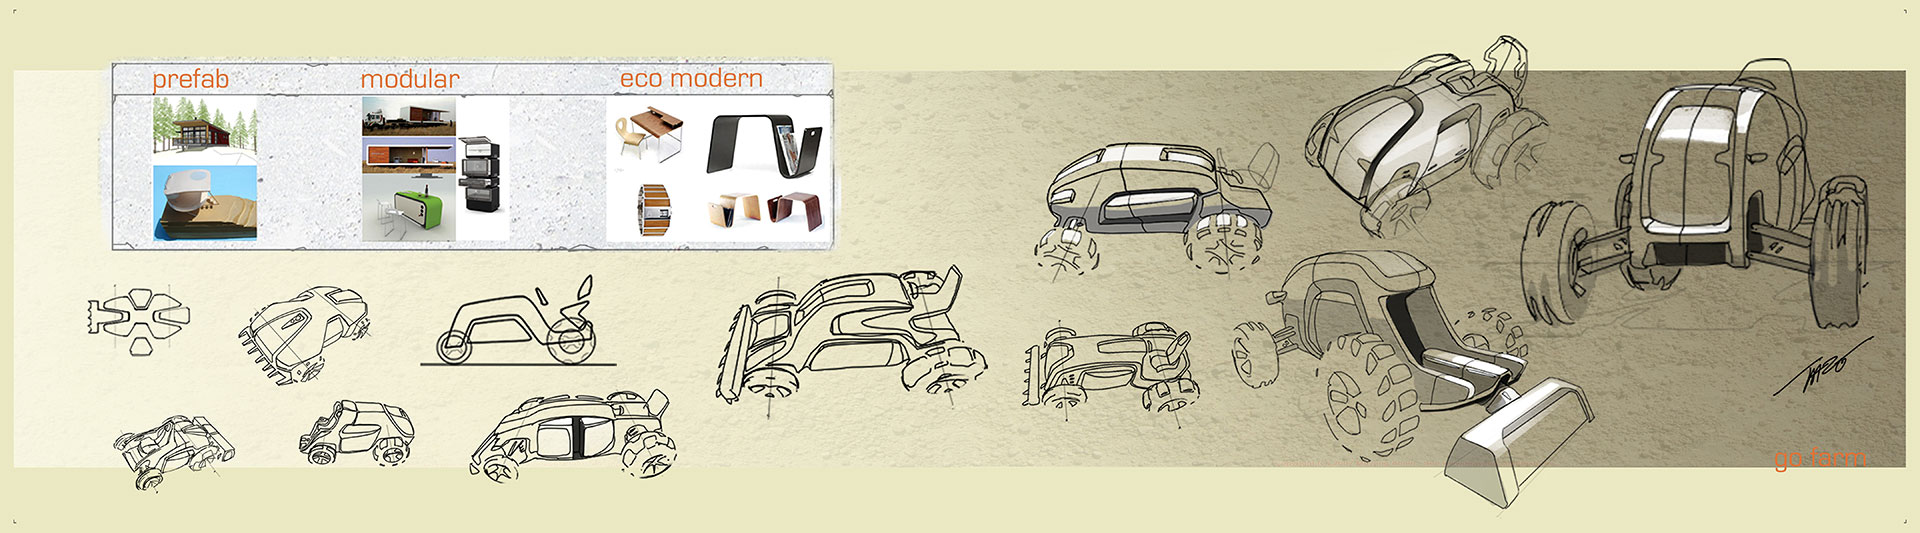 Honda Kit Trac Concept - Design Sketches